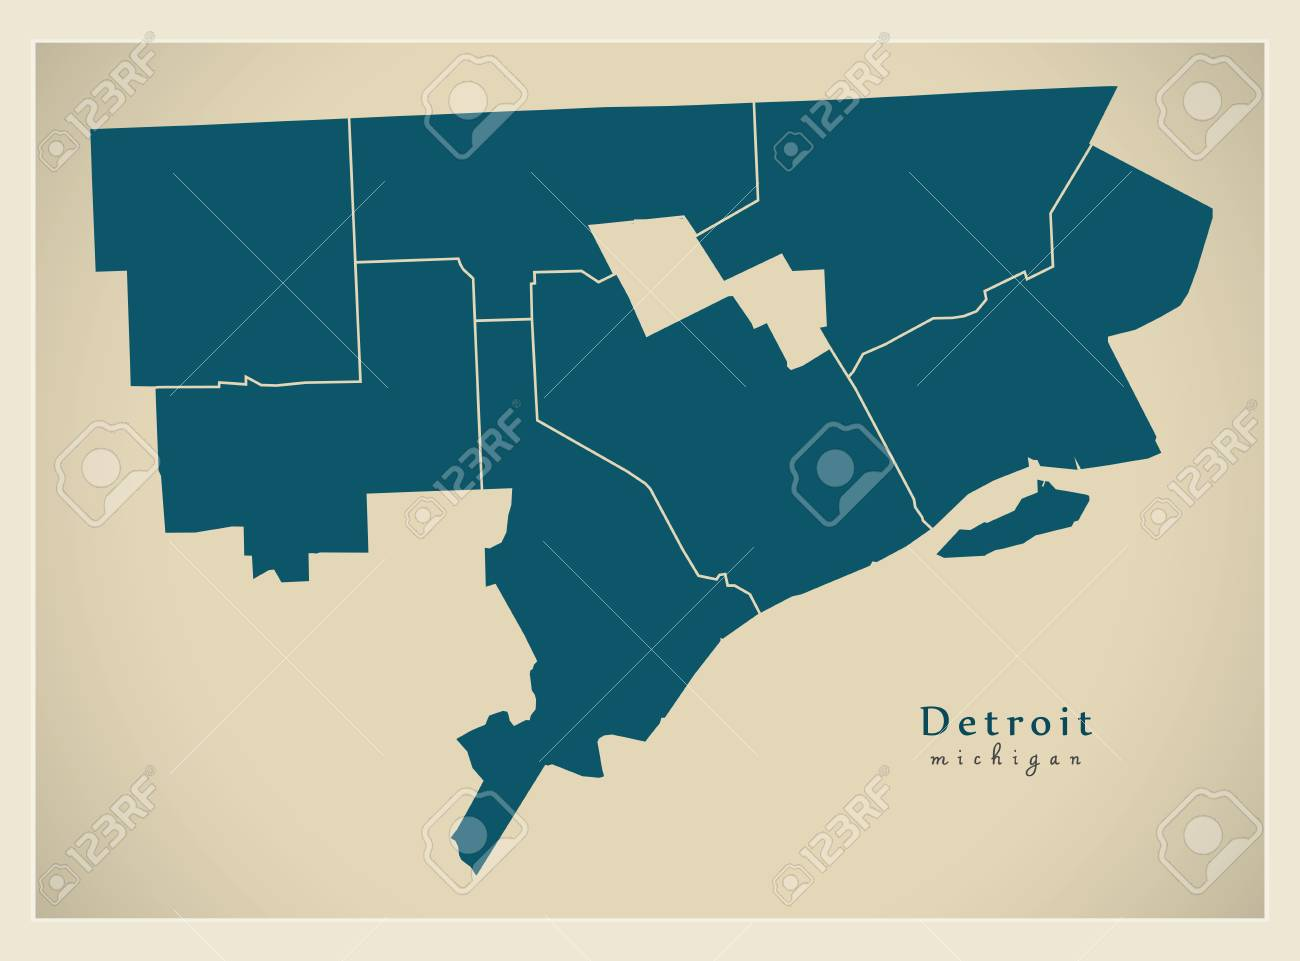 Modern City Map - Detroit Michigan city of the USA with districts on map of porter county, map of st. john, map of braddock, map of granger, map of ray, map of monon railroad, map of lawrenceburg, map of detroit, map of beverly shores, map of turkey run state park, map of dubois county, map of kalamazoo, map of kewaunee, map of new carlisle, map of ironwood, map of rossville, map of lansing, map of batesville, map of kendallville, map of indiana,